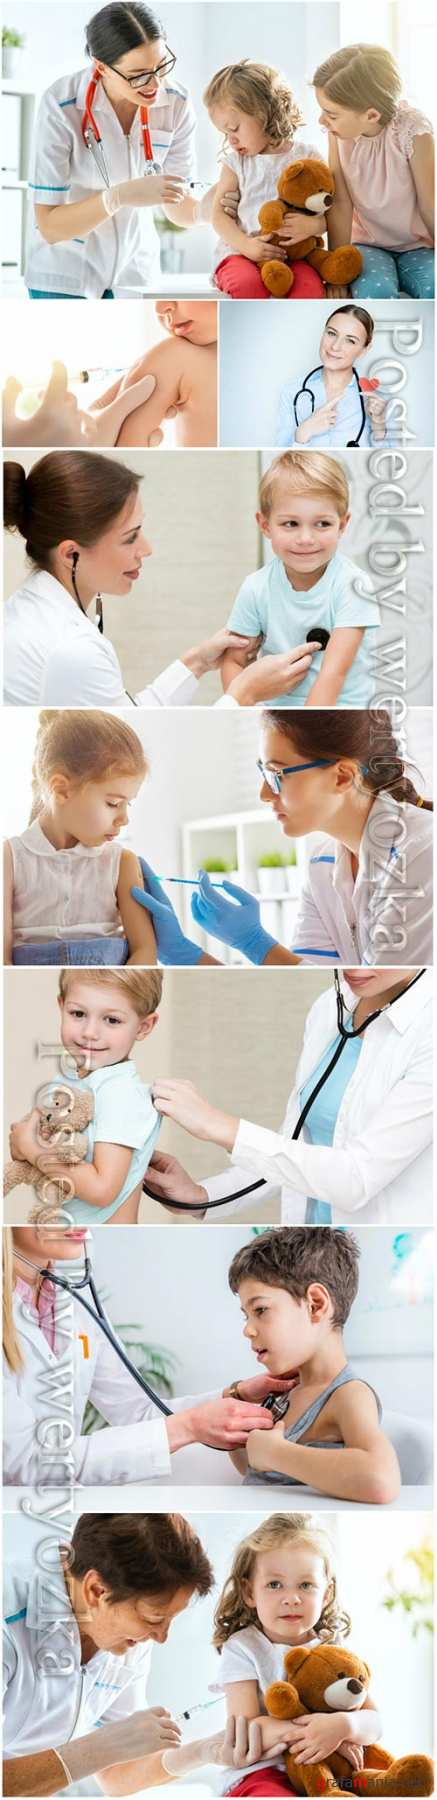 Children's doctor and children stock photo